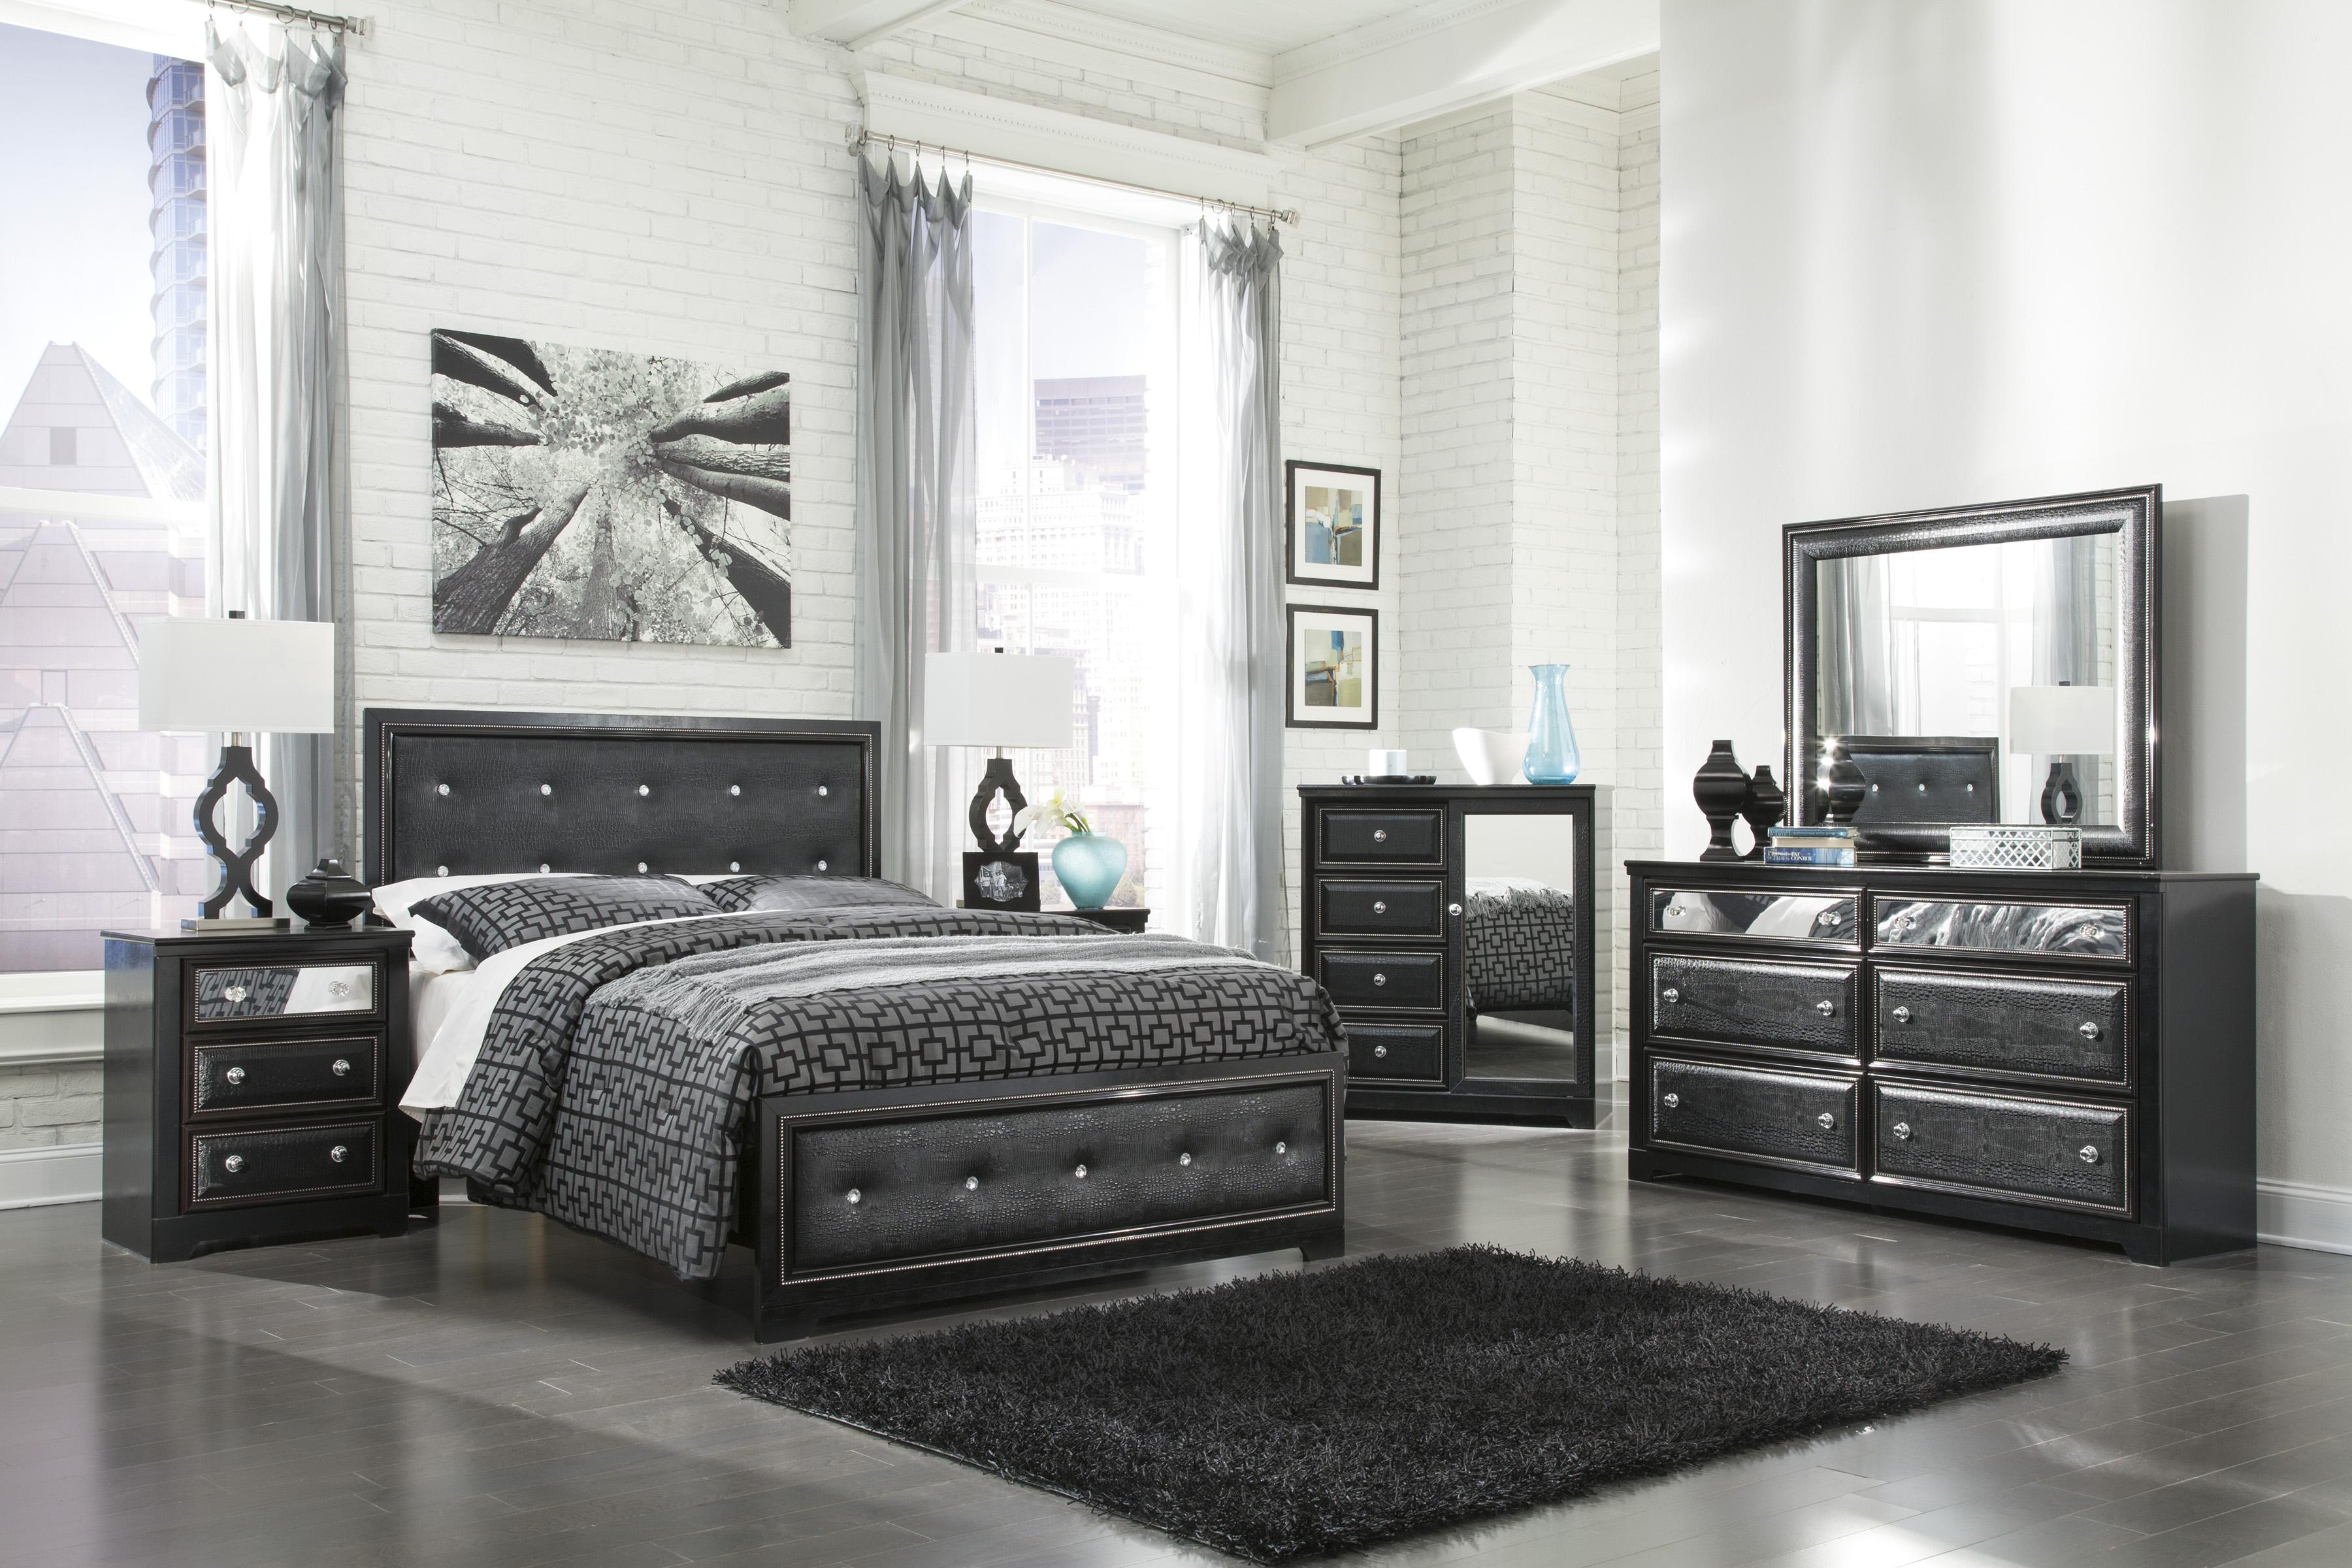 Signature Design by Ashley Alamadyre Queen Bedroom Group - Item Number: B364 Q Bedroom Group 2